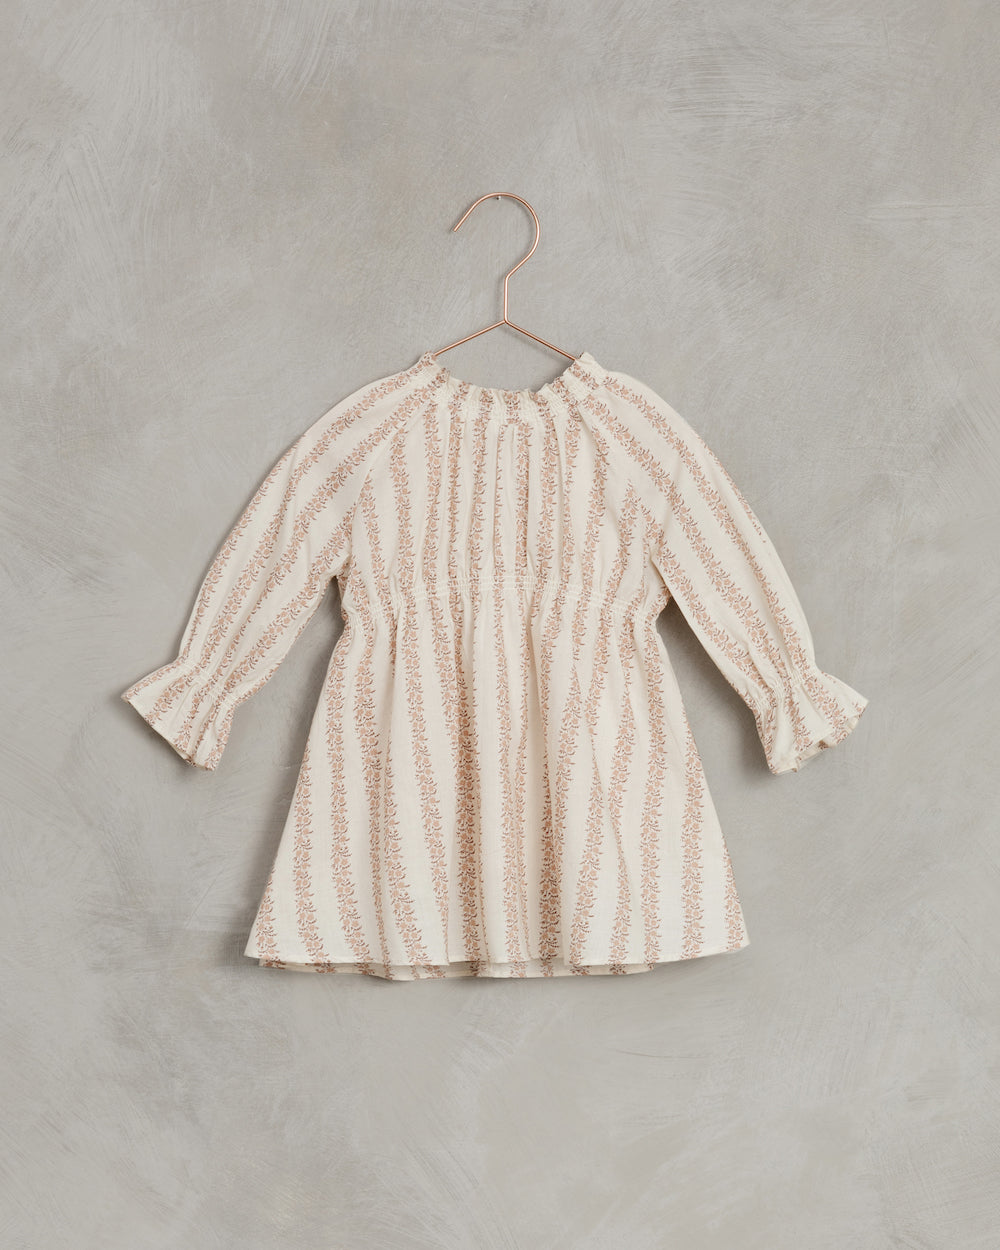 Noralee Rose Striped Chloe Dress - Shell